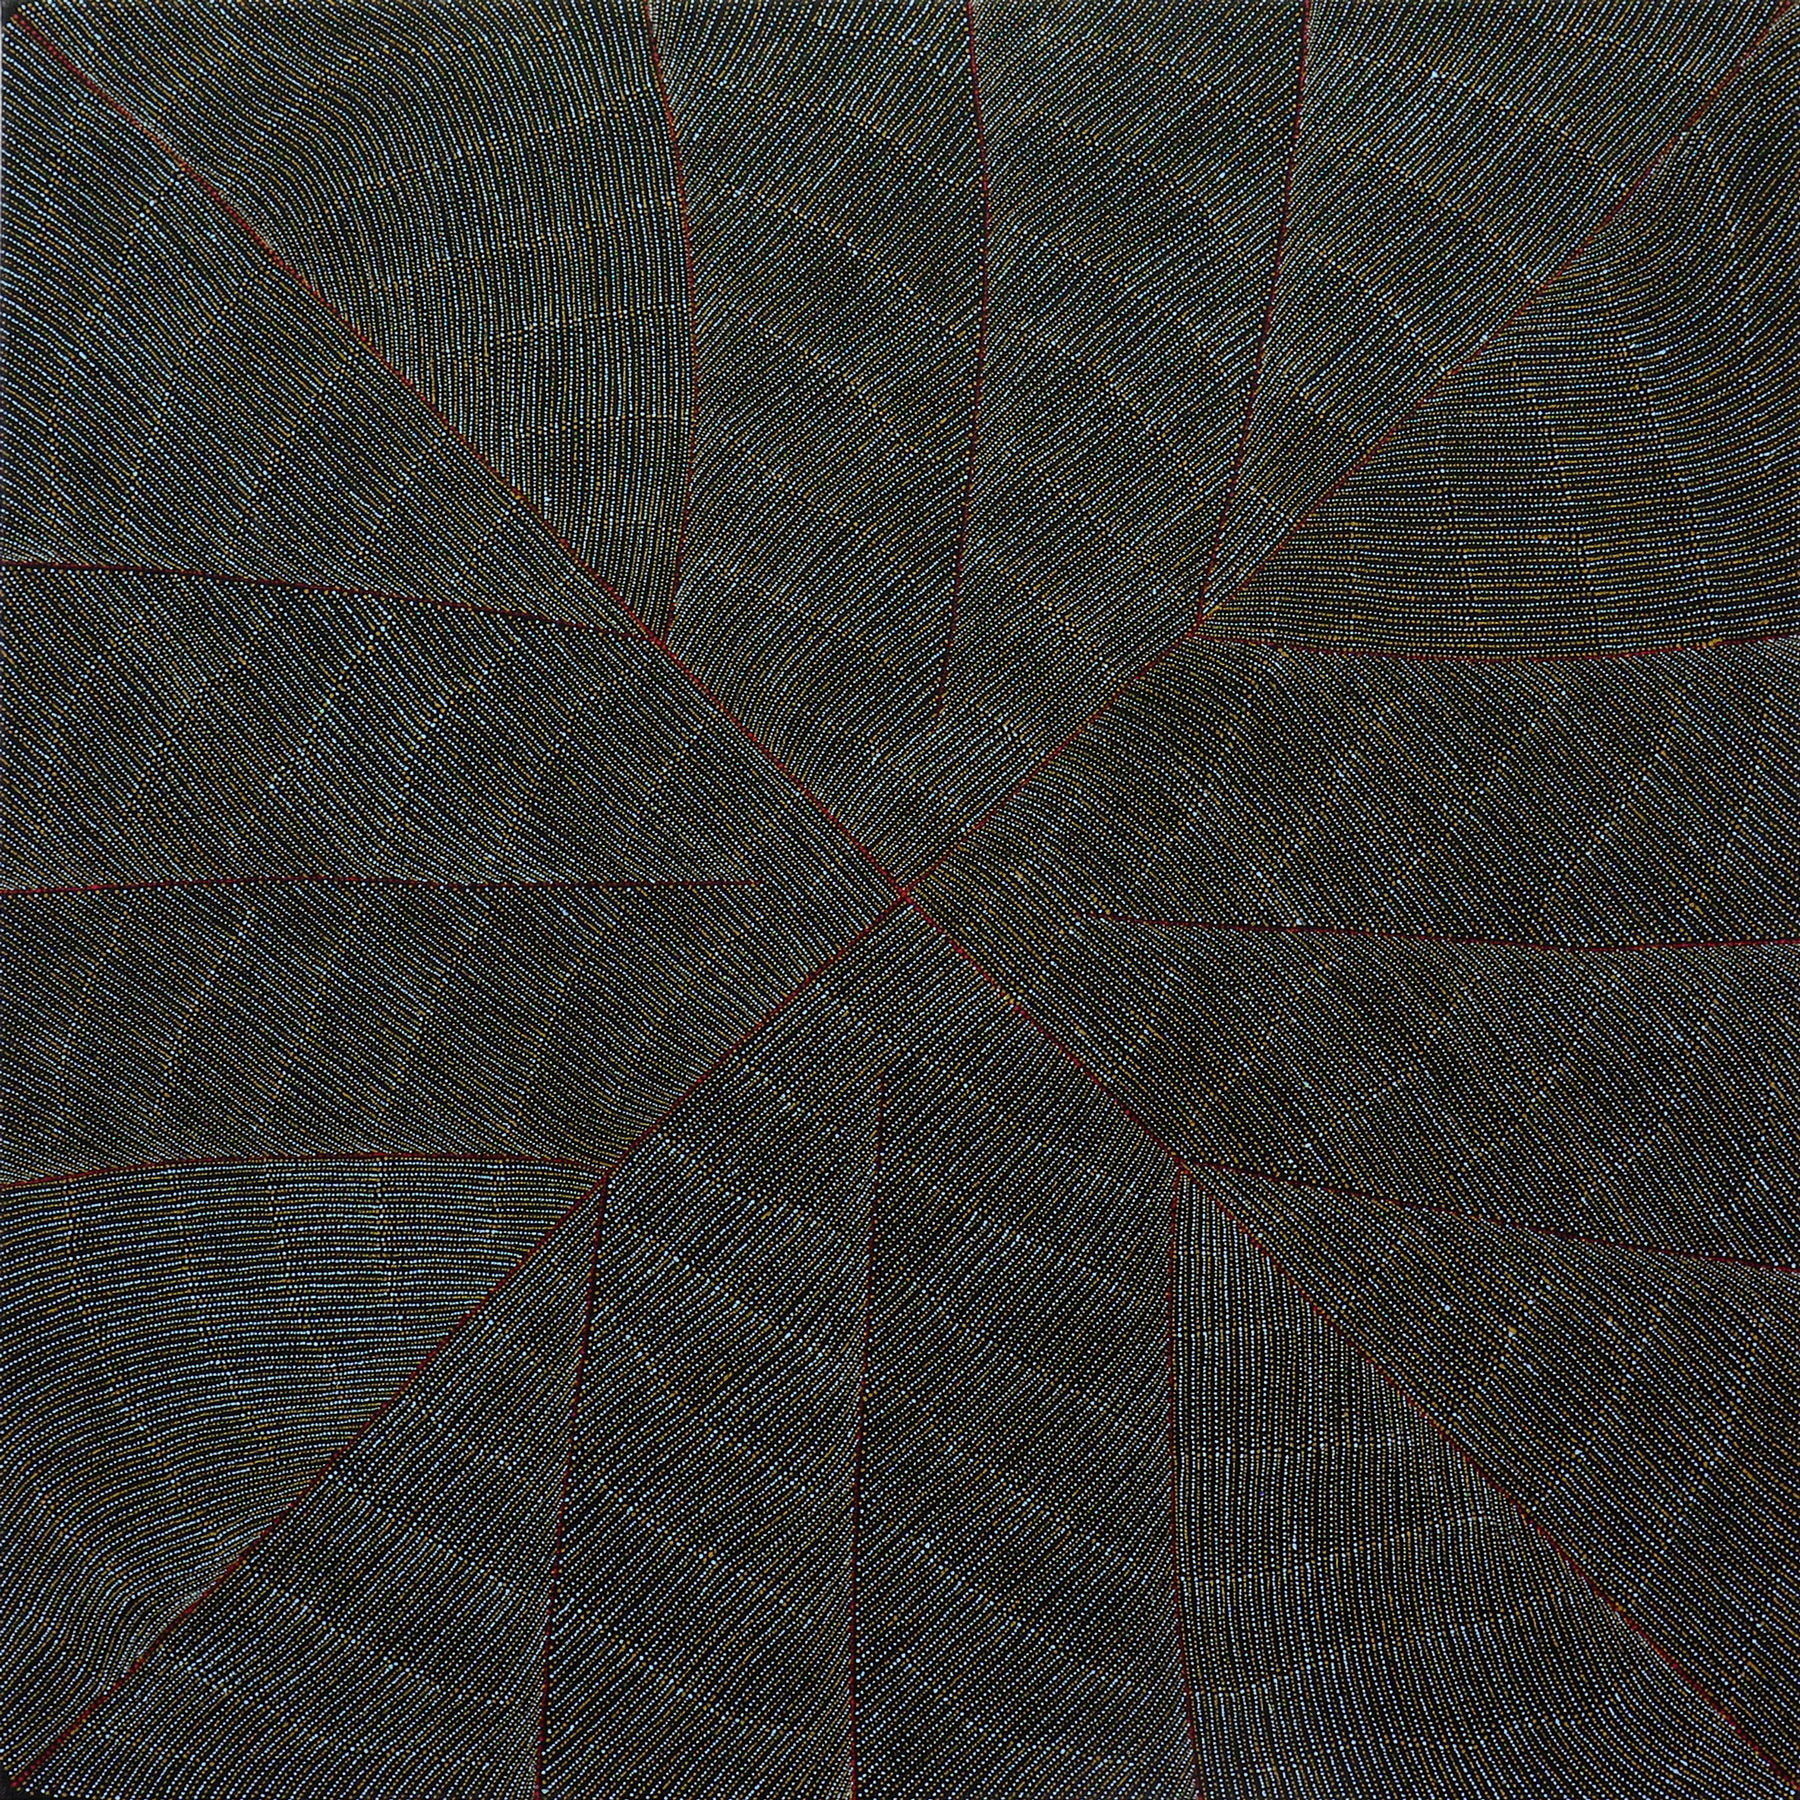 Acrylic on Linen 35 1/2 x 35 3/4 inches / 90 x 91 cm - Marc Straus Gallery